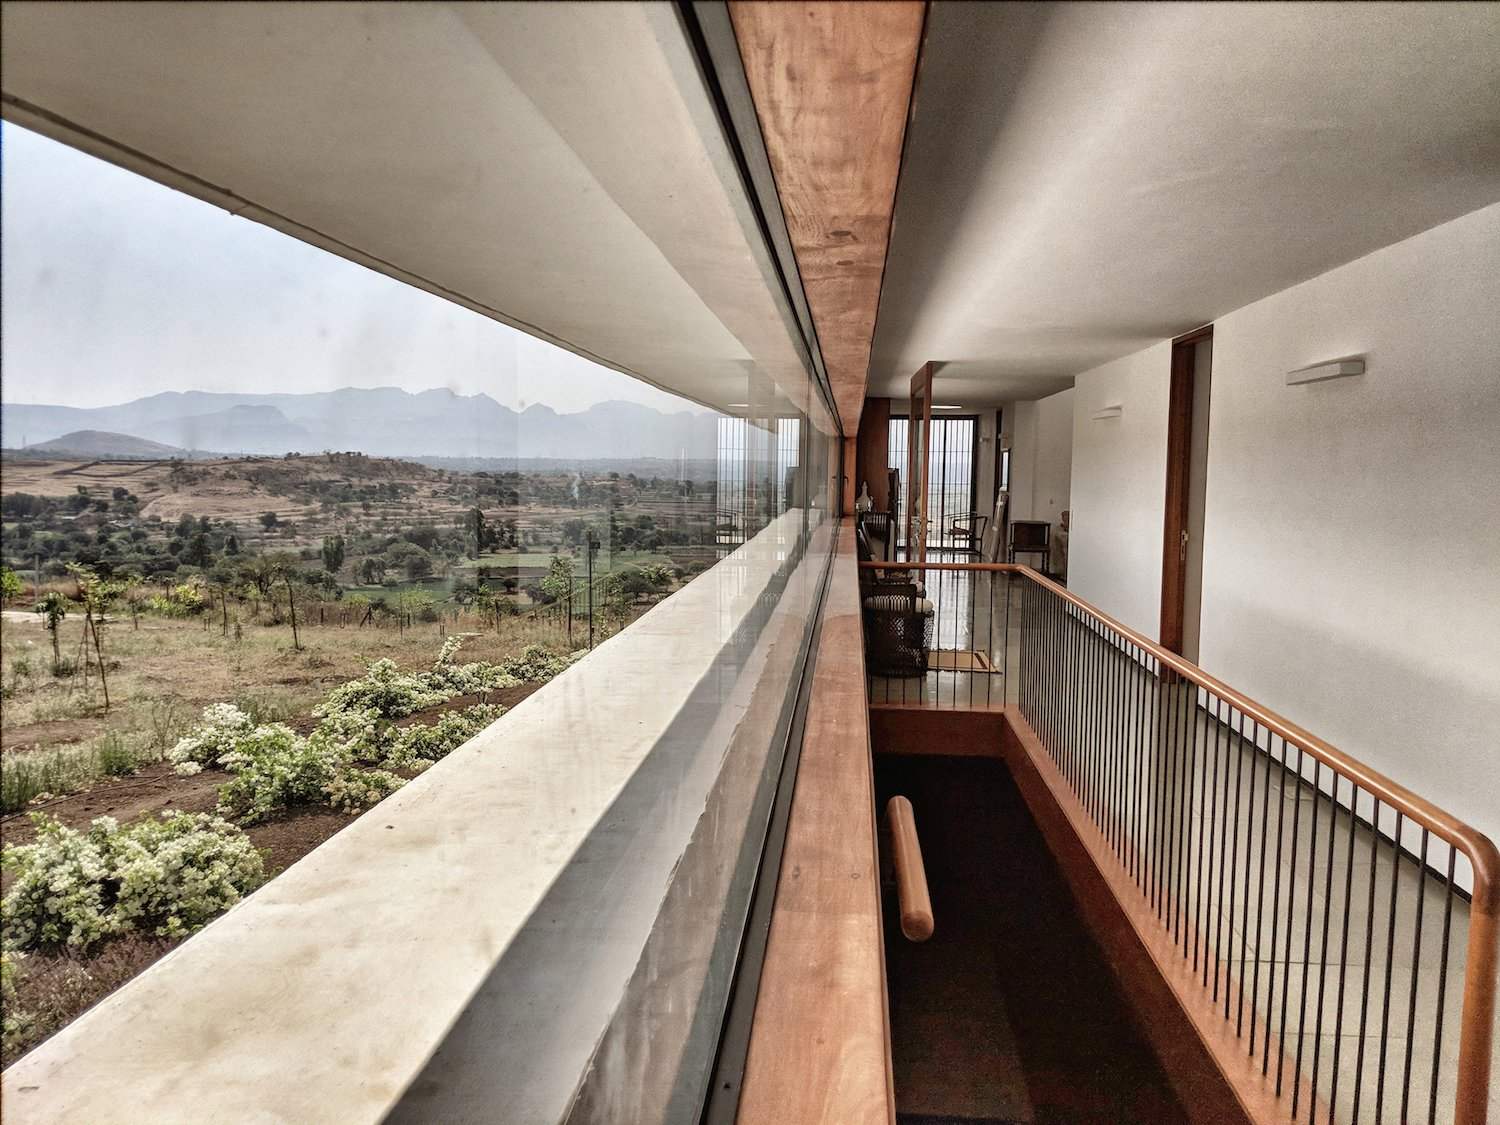 Windows, Picture Window Type, Wood, and Metal Large windows let in natural light and views from all directions.  Photo 5 of 14 in A Modern Home in India Evokes Emotion With a Giant 4-Ton Rock